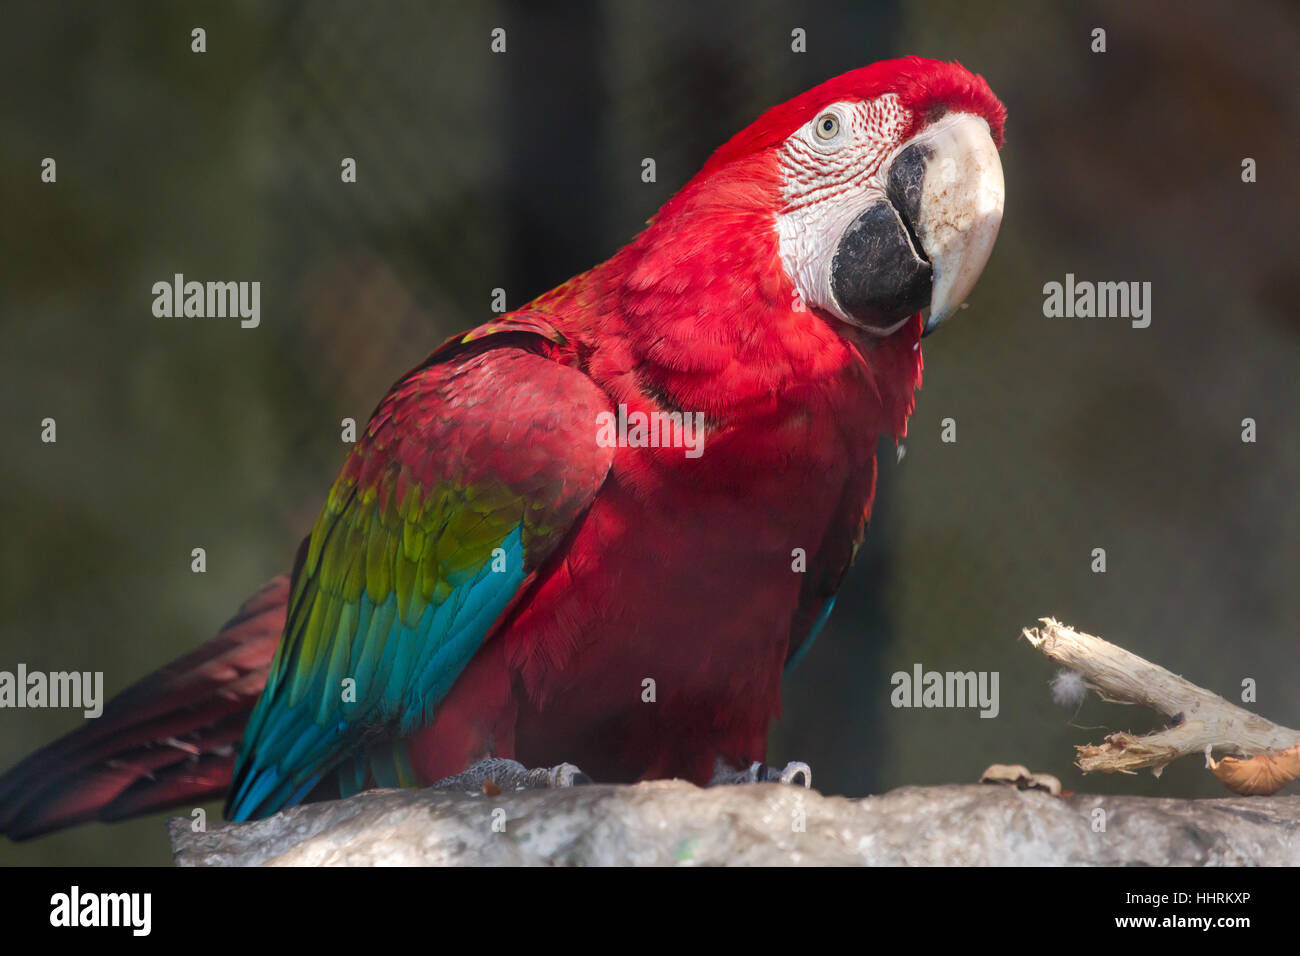 Scarlet macaw bird at a bird sanctuary in India  A large red